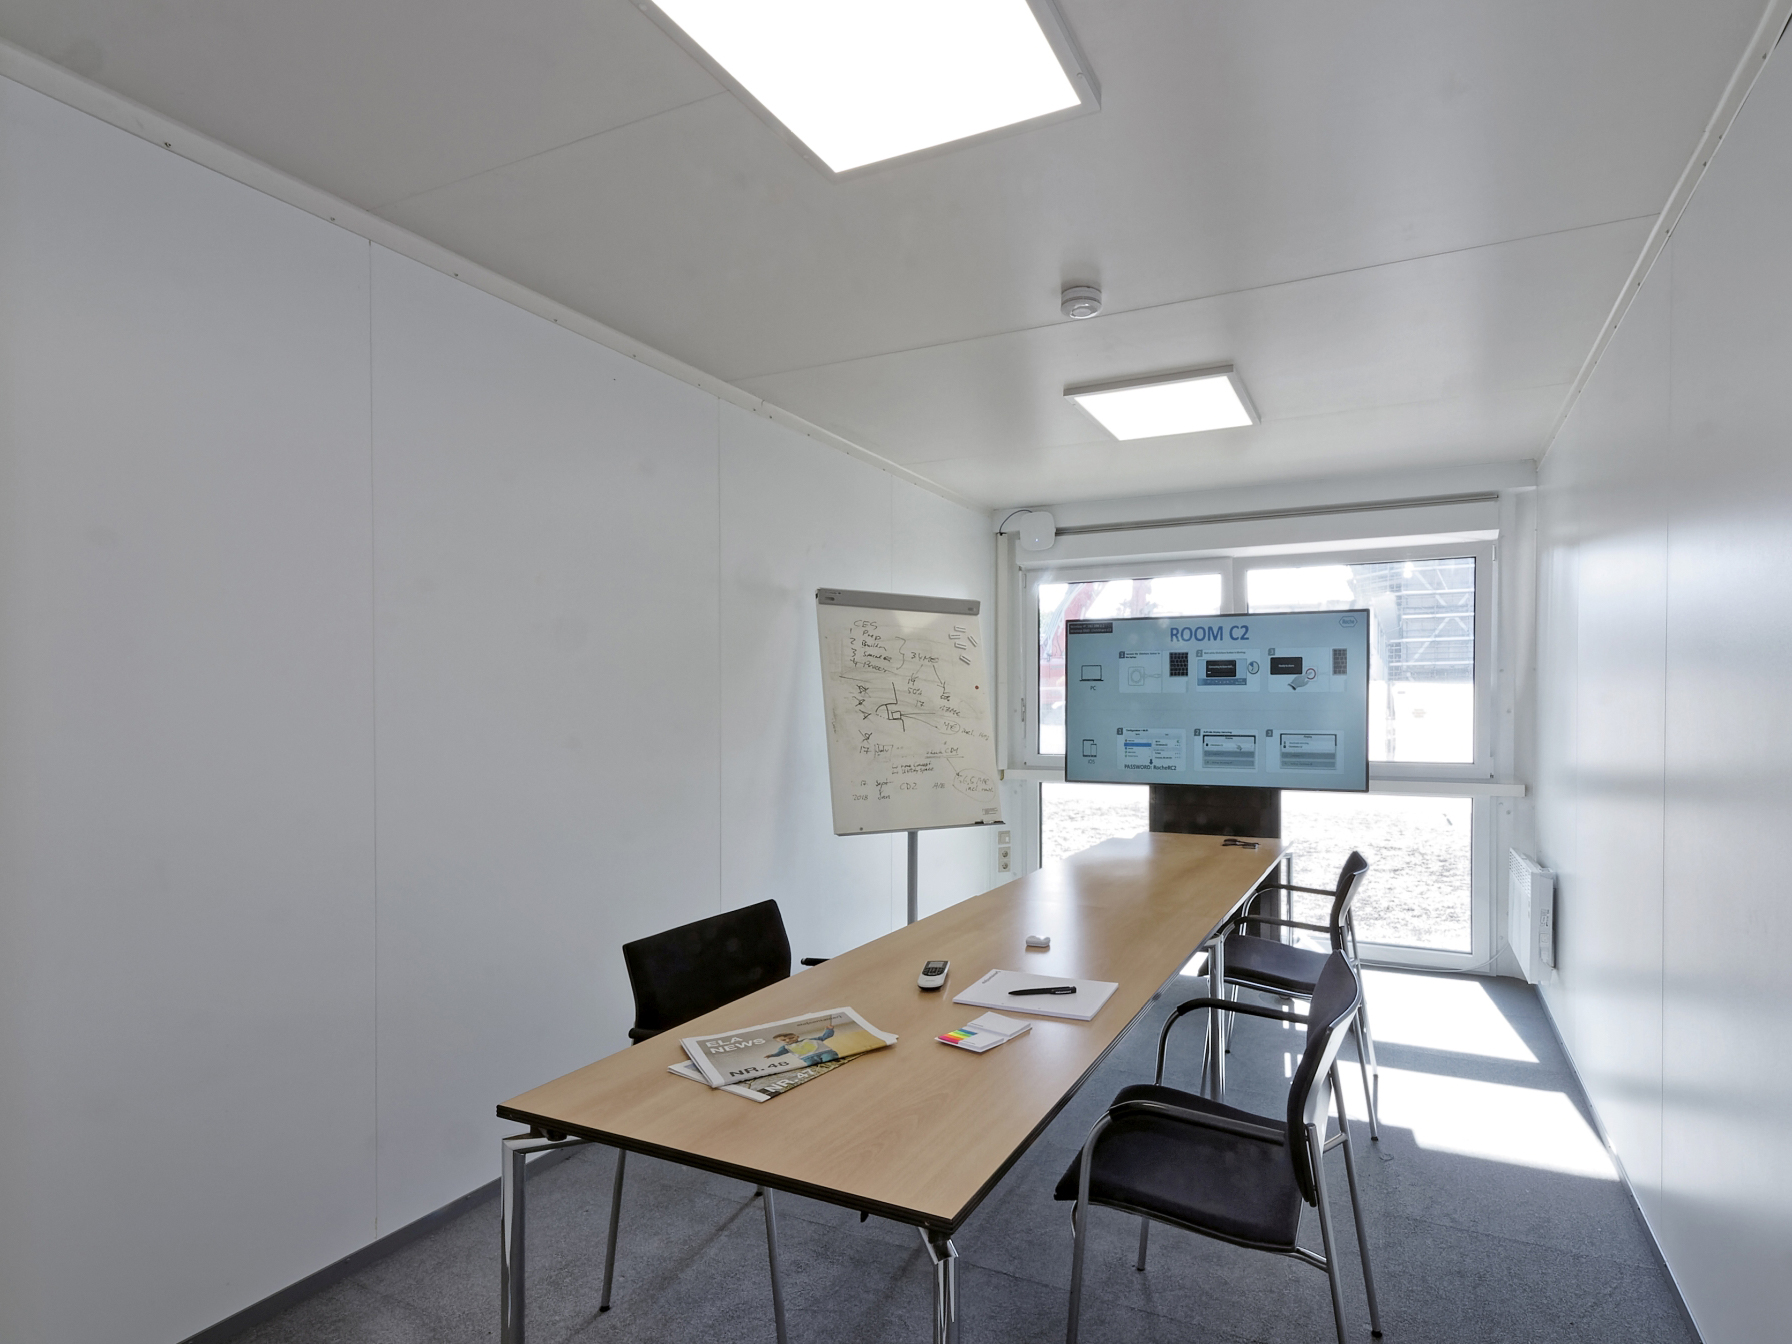 The functional meeting rooms on the ground floor of the ELA facility were ready for immediate occupancy.